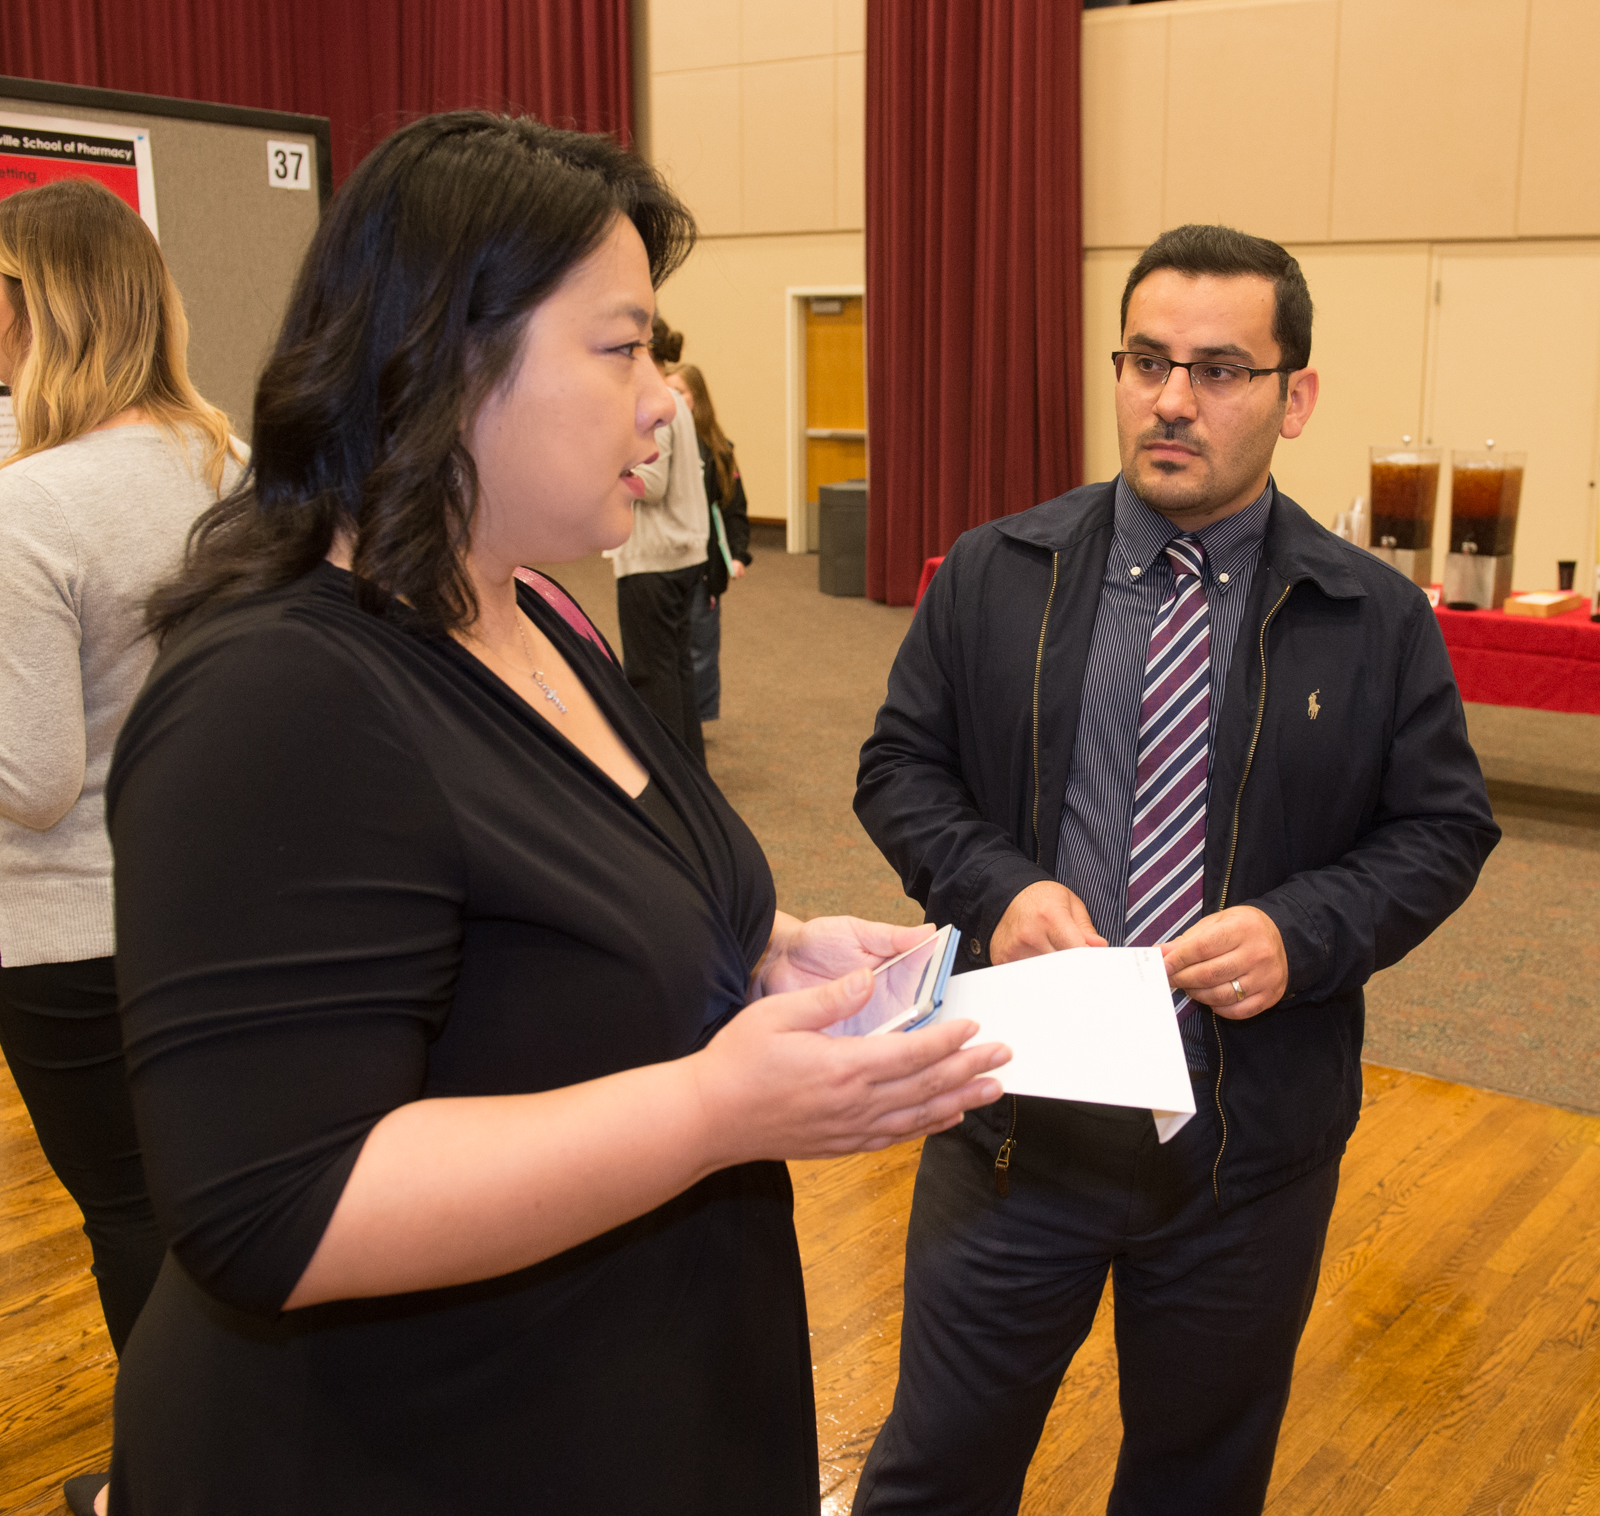 Dr. Fan speaks with Radir Barwari about his Capstone project